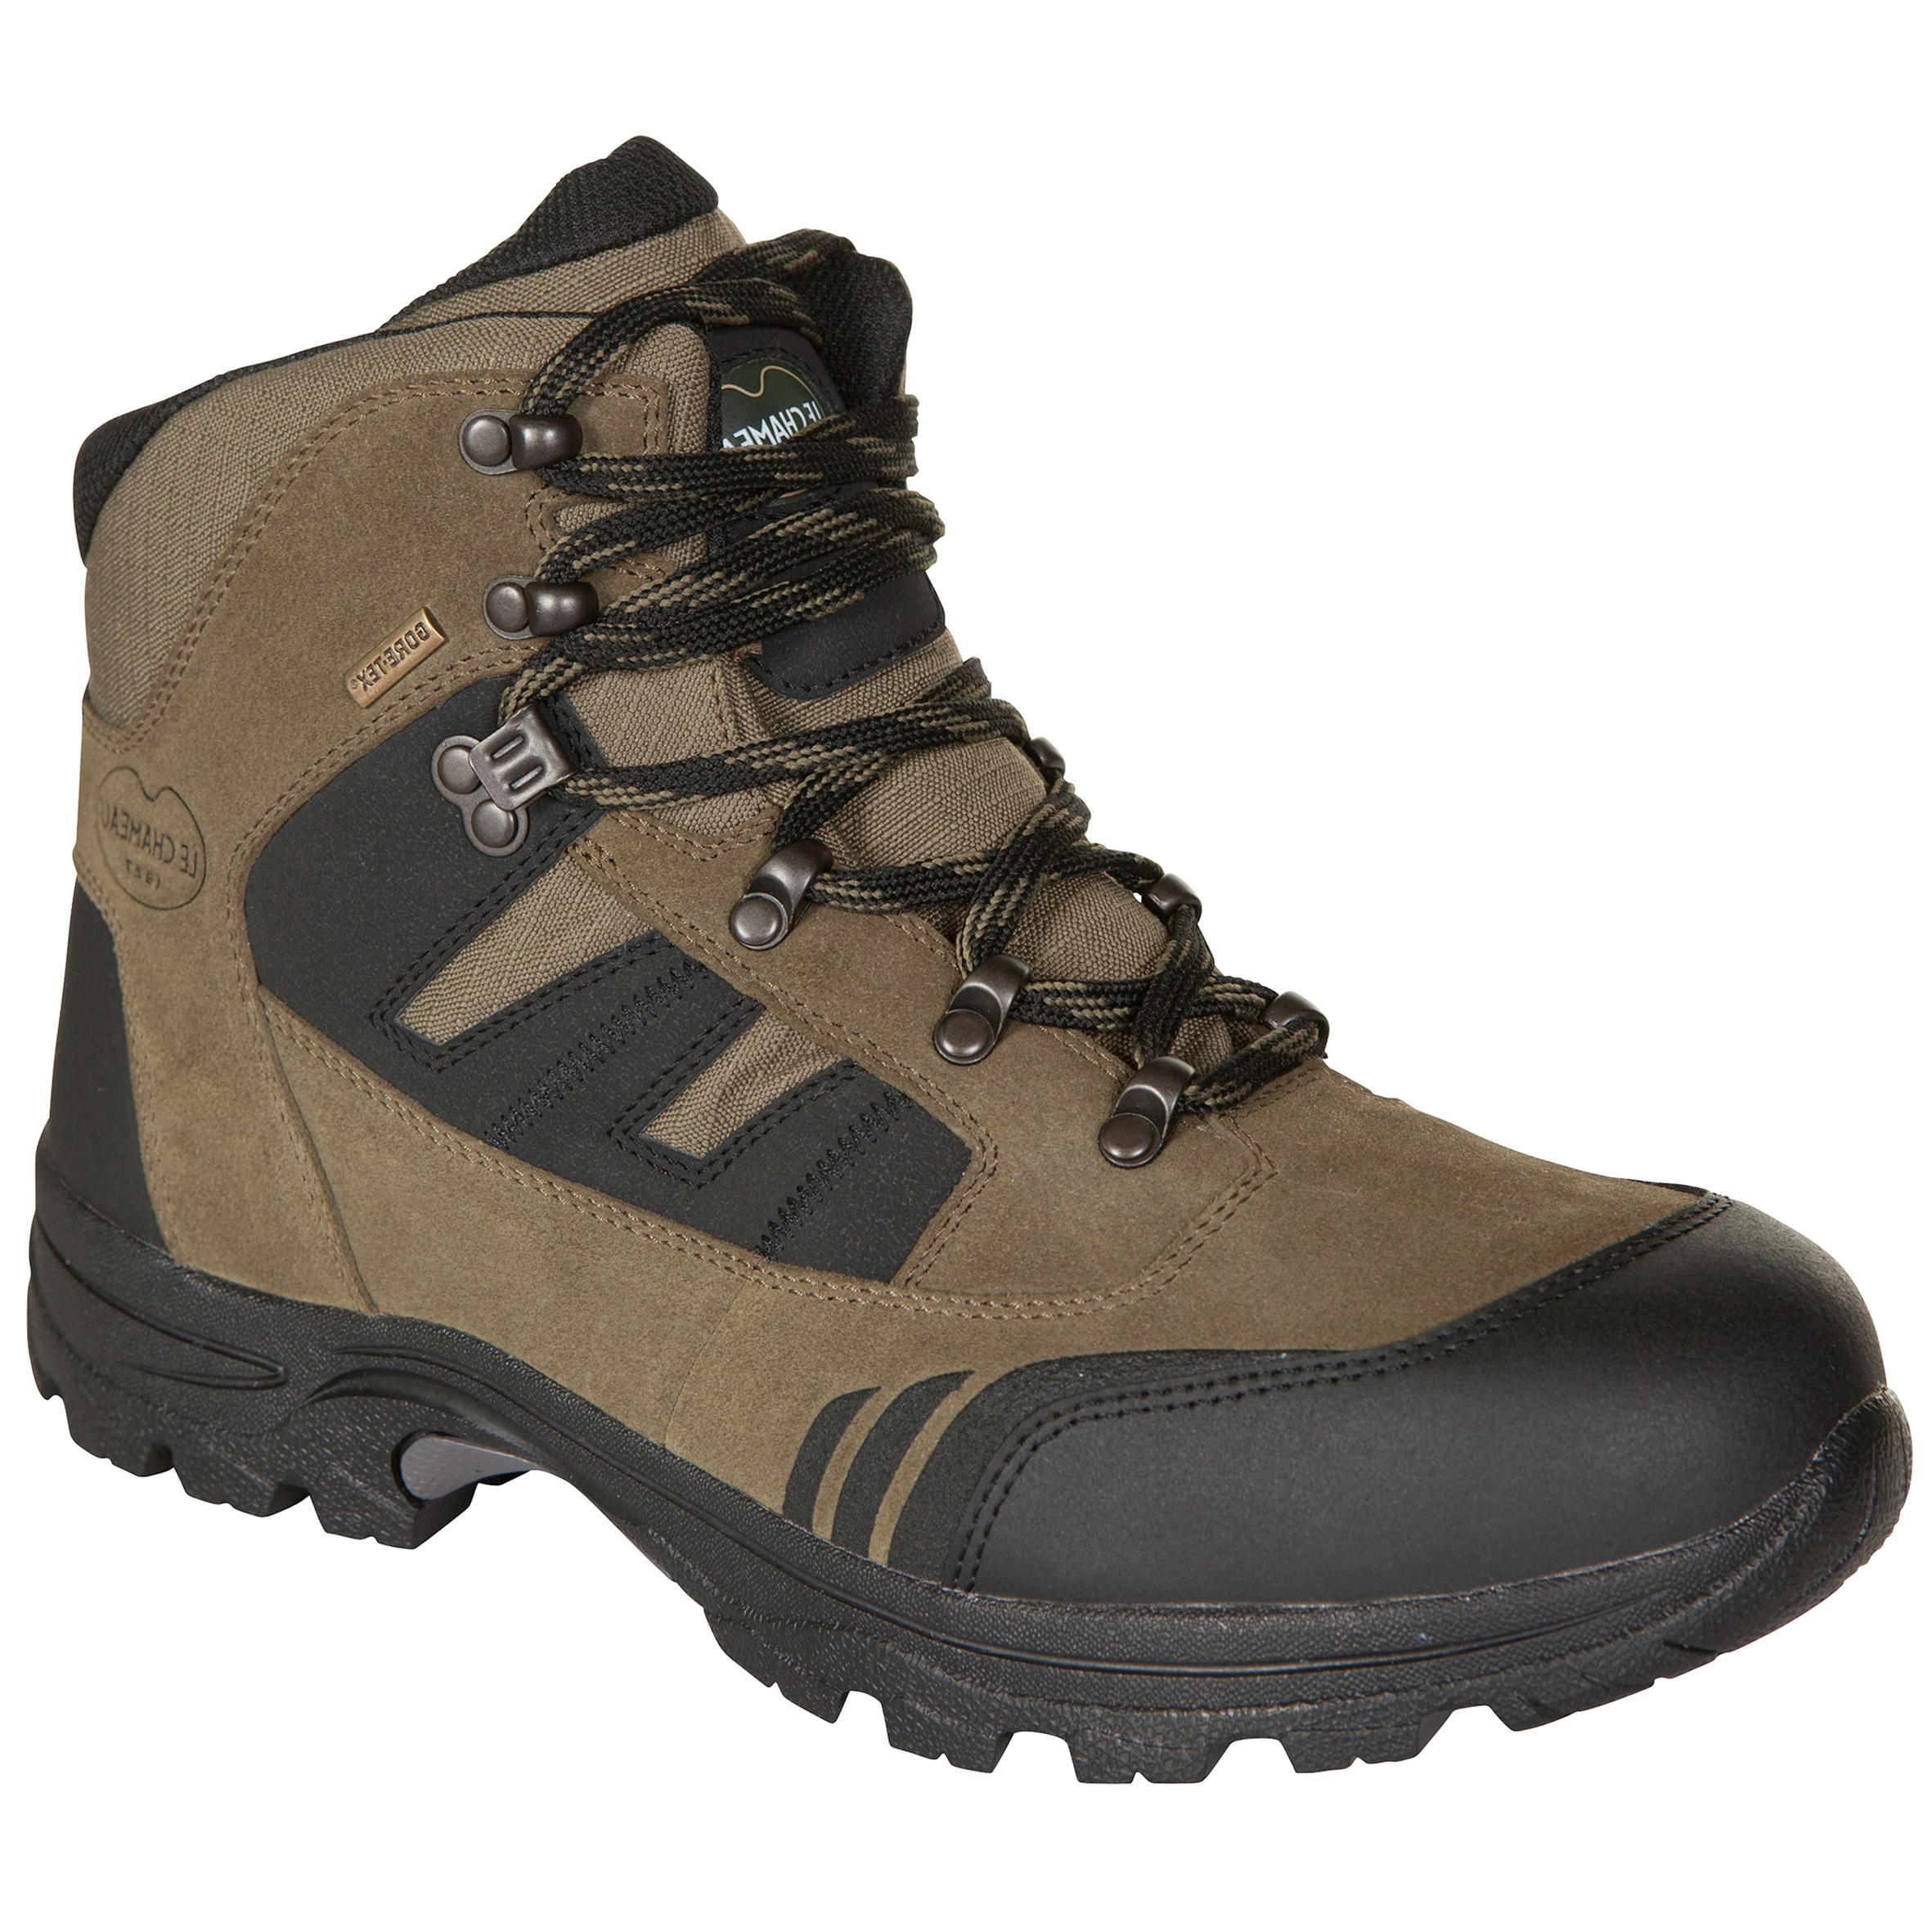 Chameau Chaussure Gtx Le Jindo Chasse roexBdC